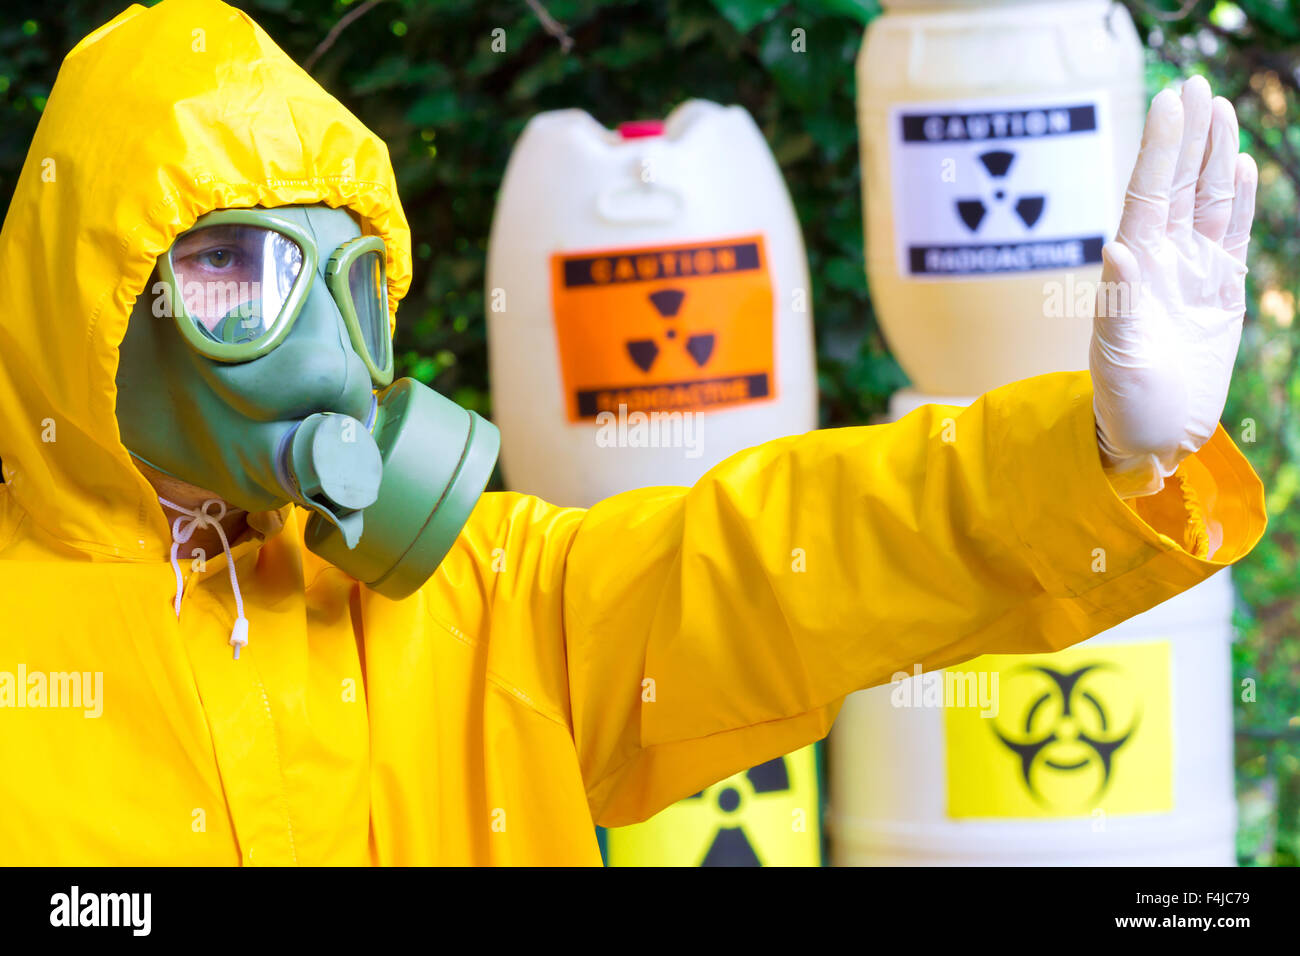 Risk of radiation - Stock Image